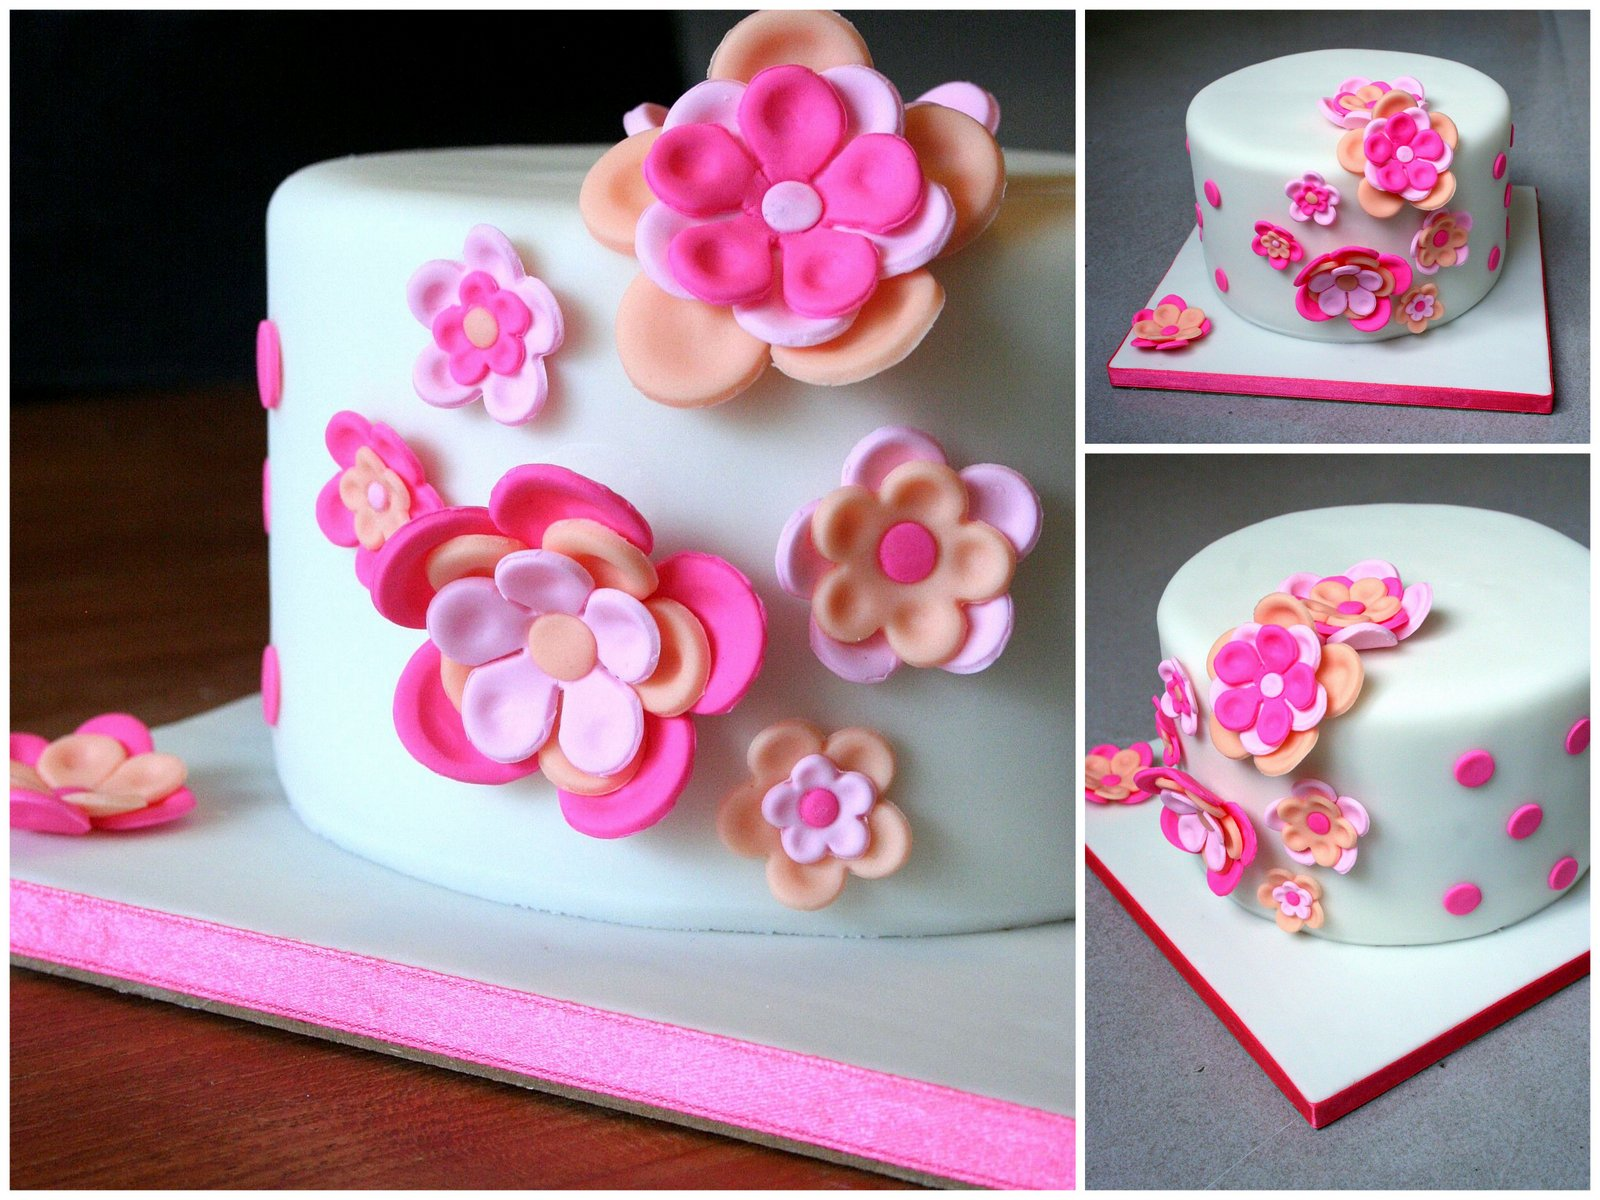 Fabuleux Initiation au Cake design AJ63